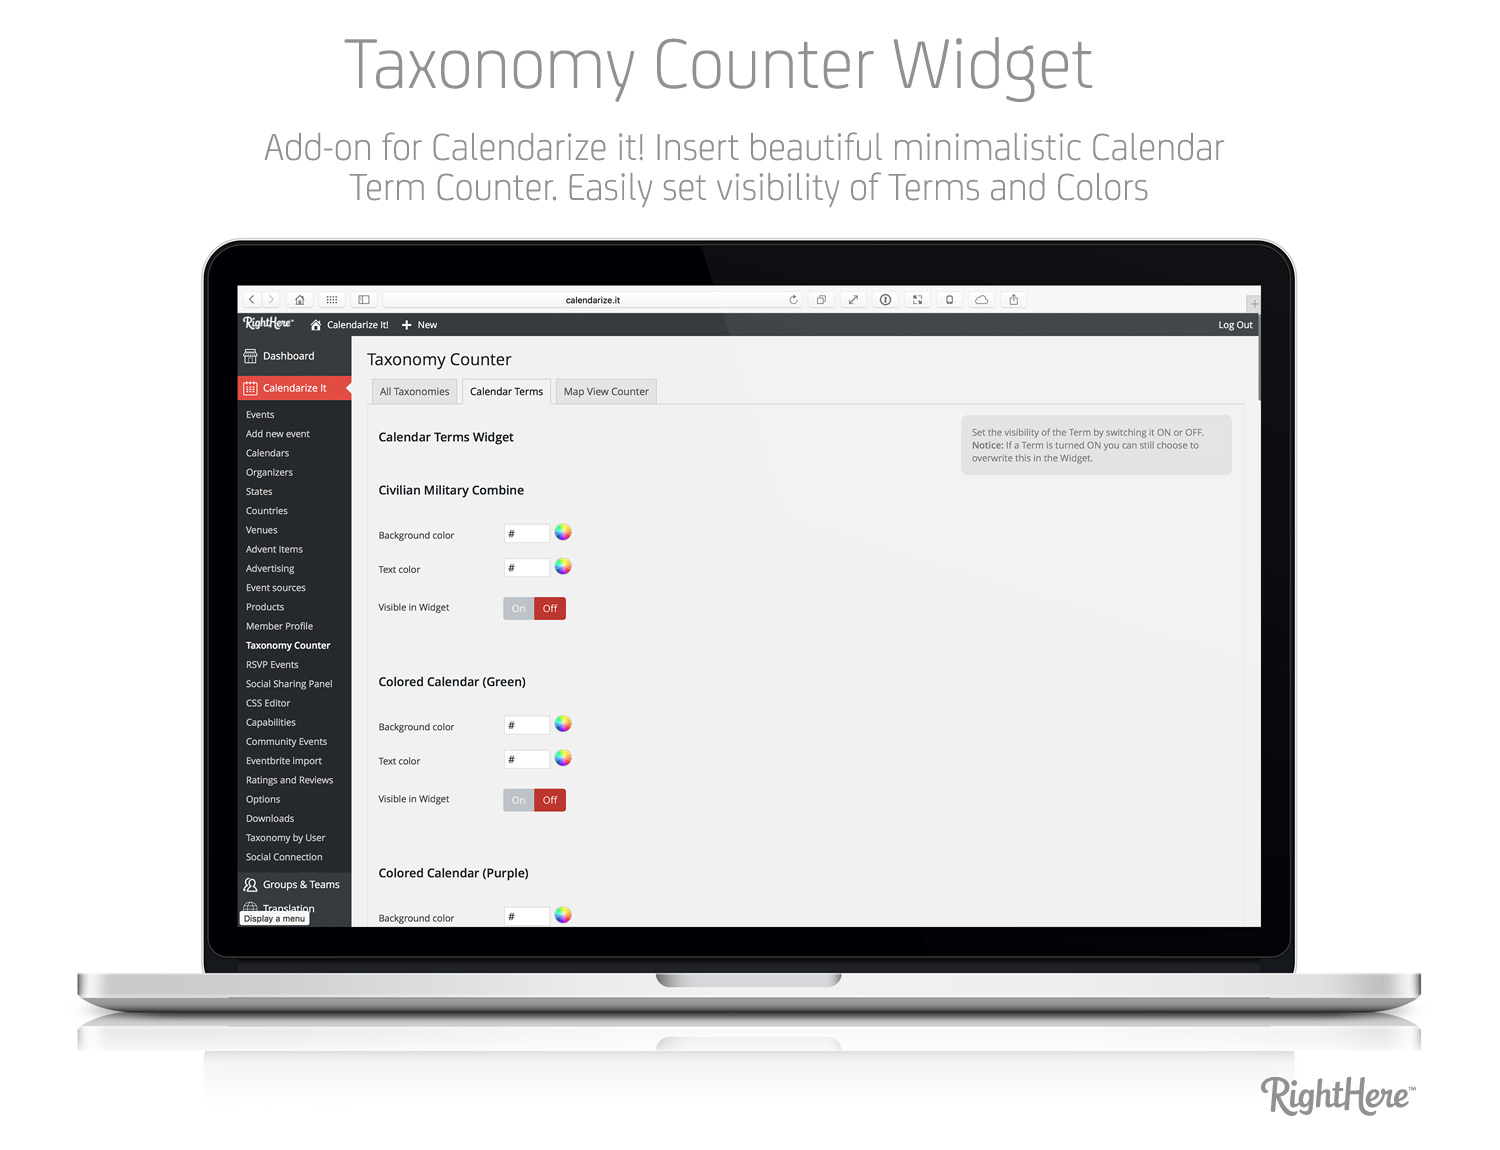 Taxonomy Counter Widget add-on for Calendarize it!